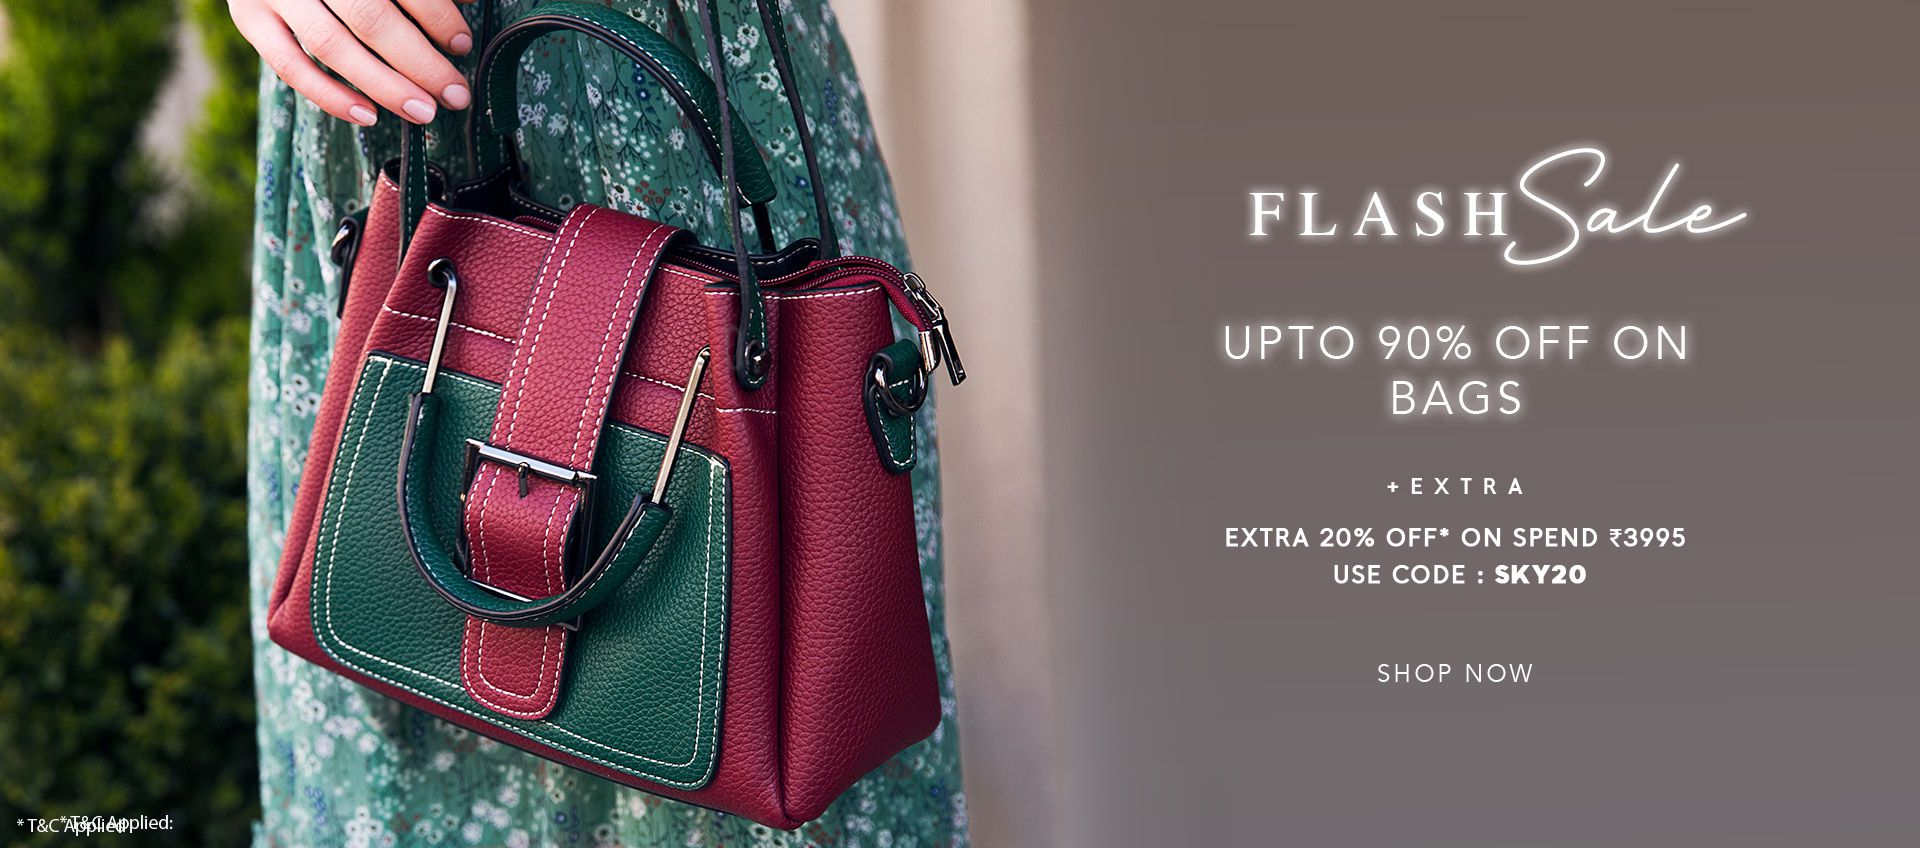 FLASH SALE UPTO 90% OFF ON BAGS